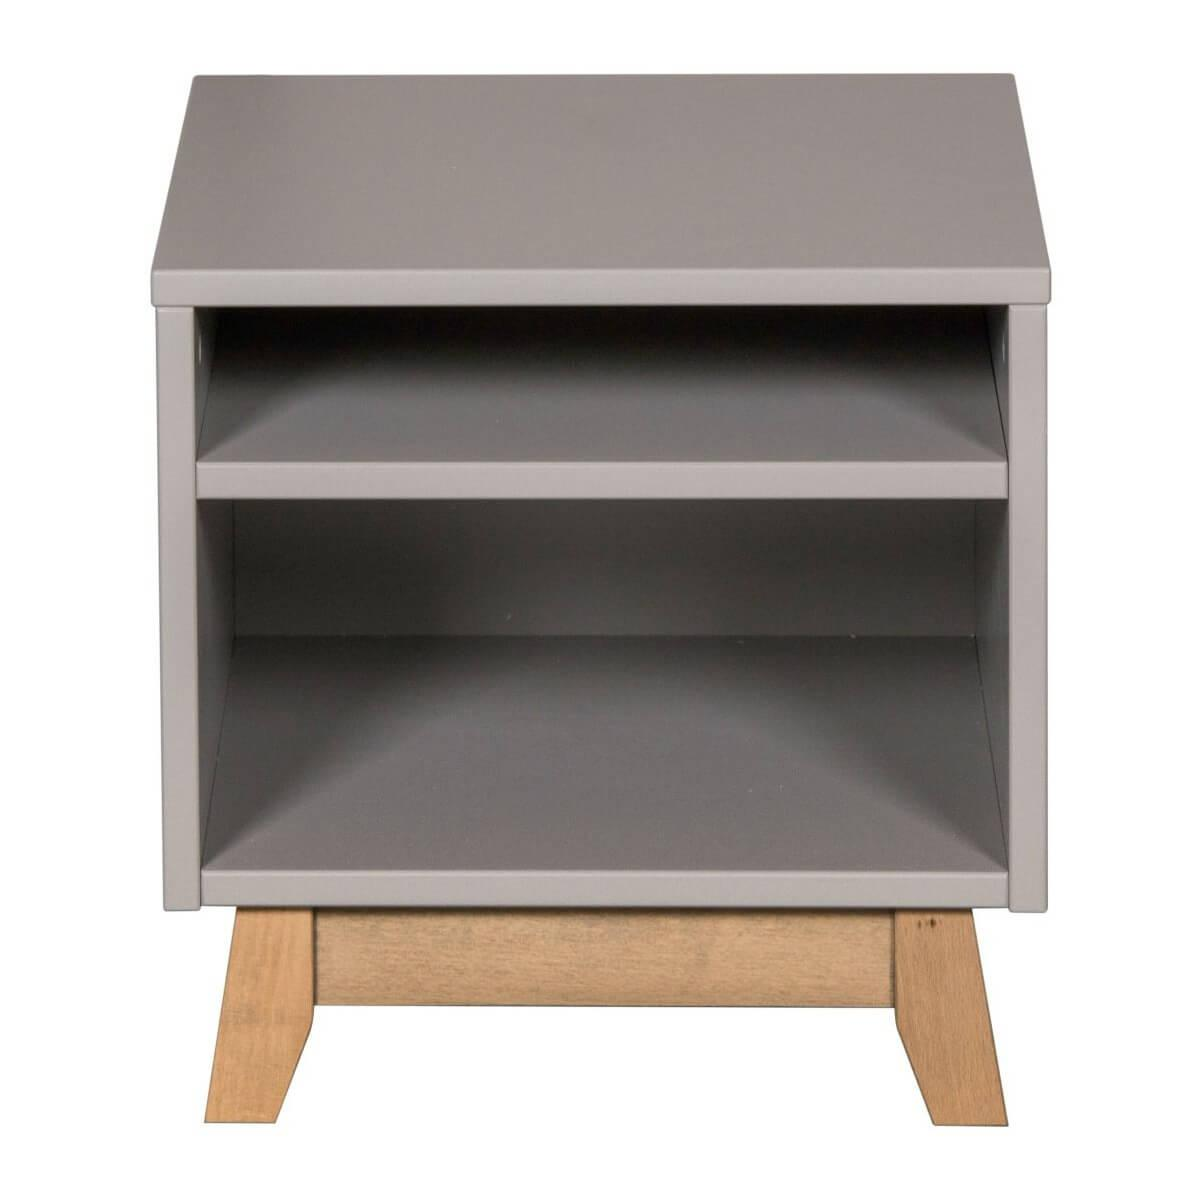 Table de nuit TRENDY Quax Griffin grey